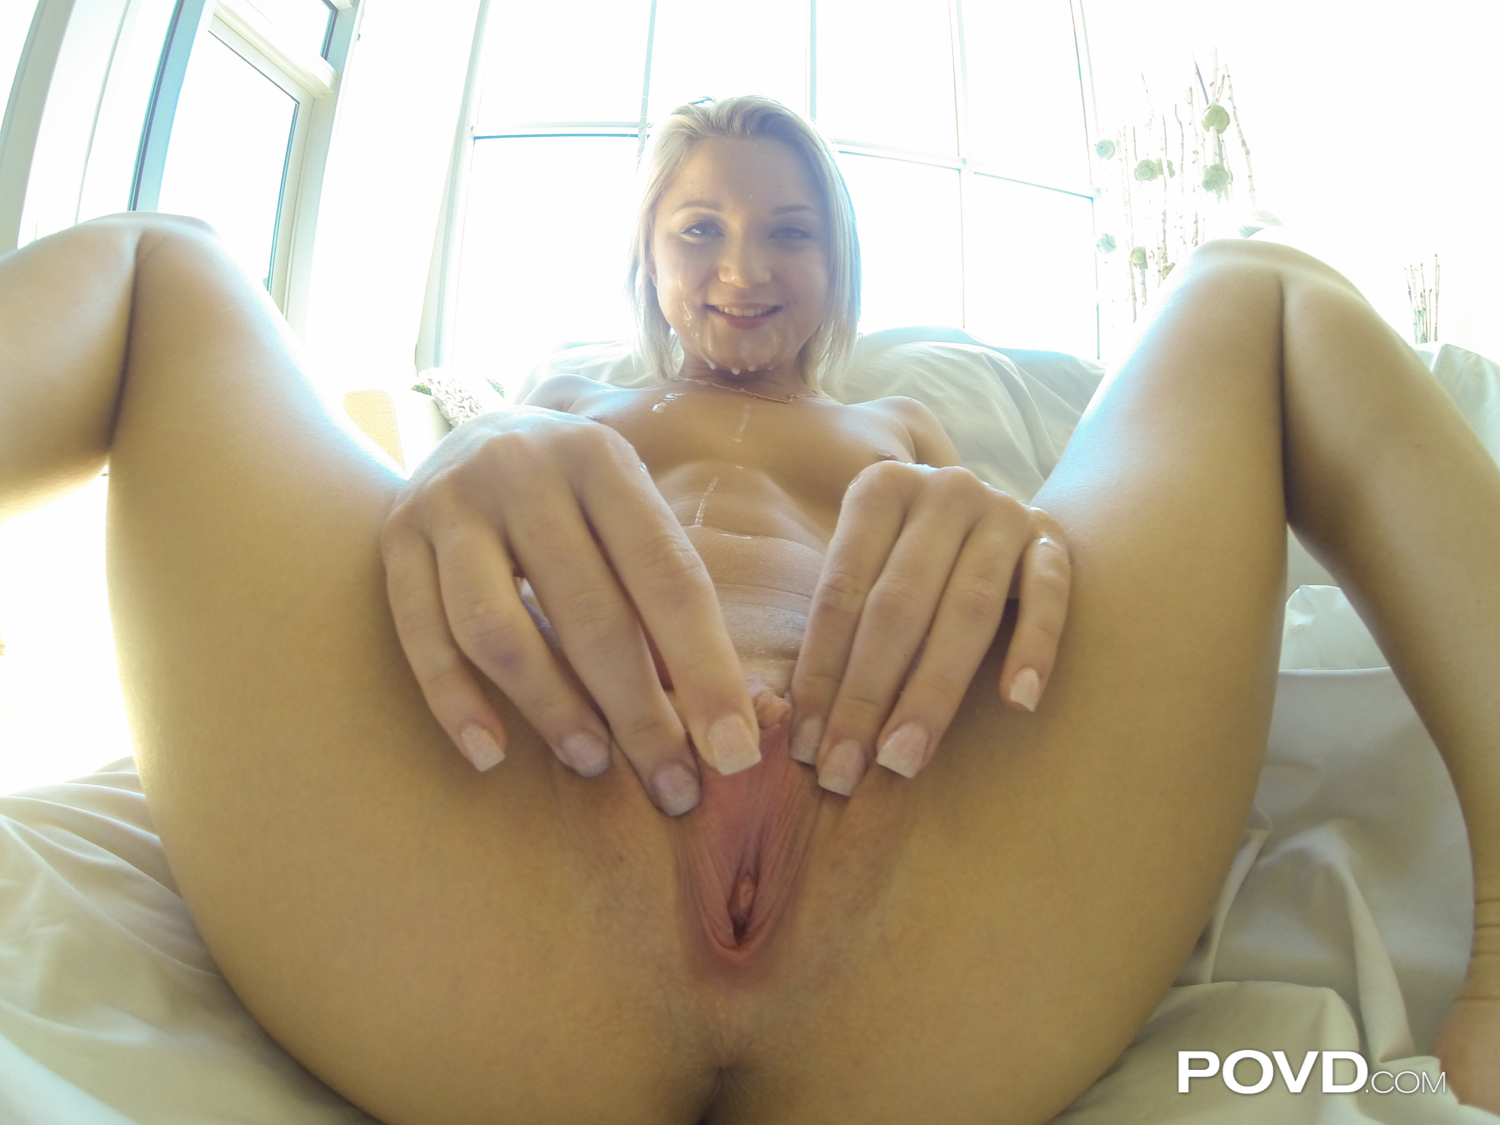 Curvy blondie sure knows how to suck cock 2